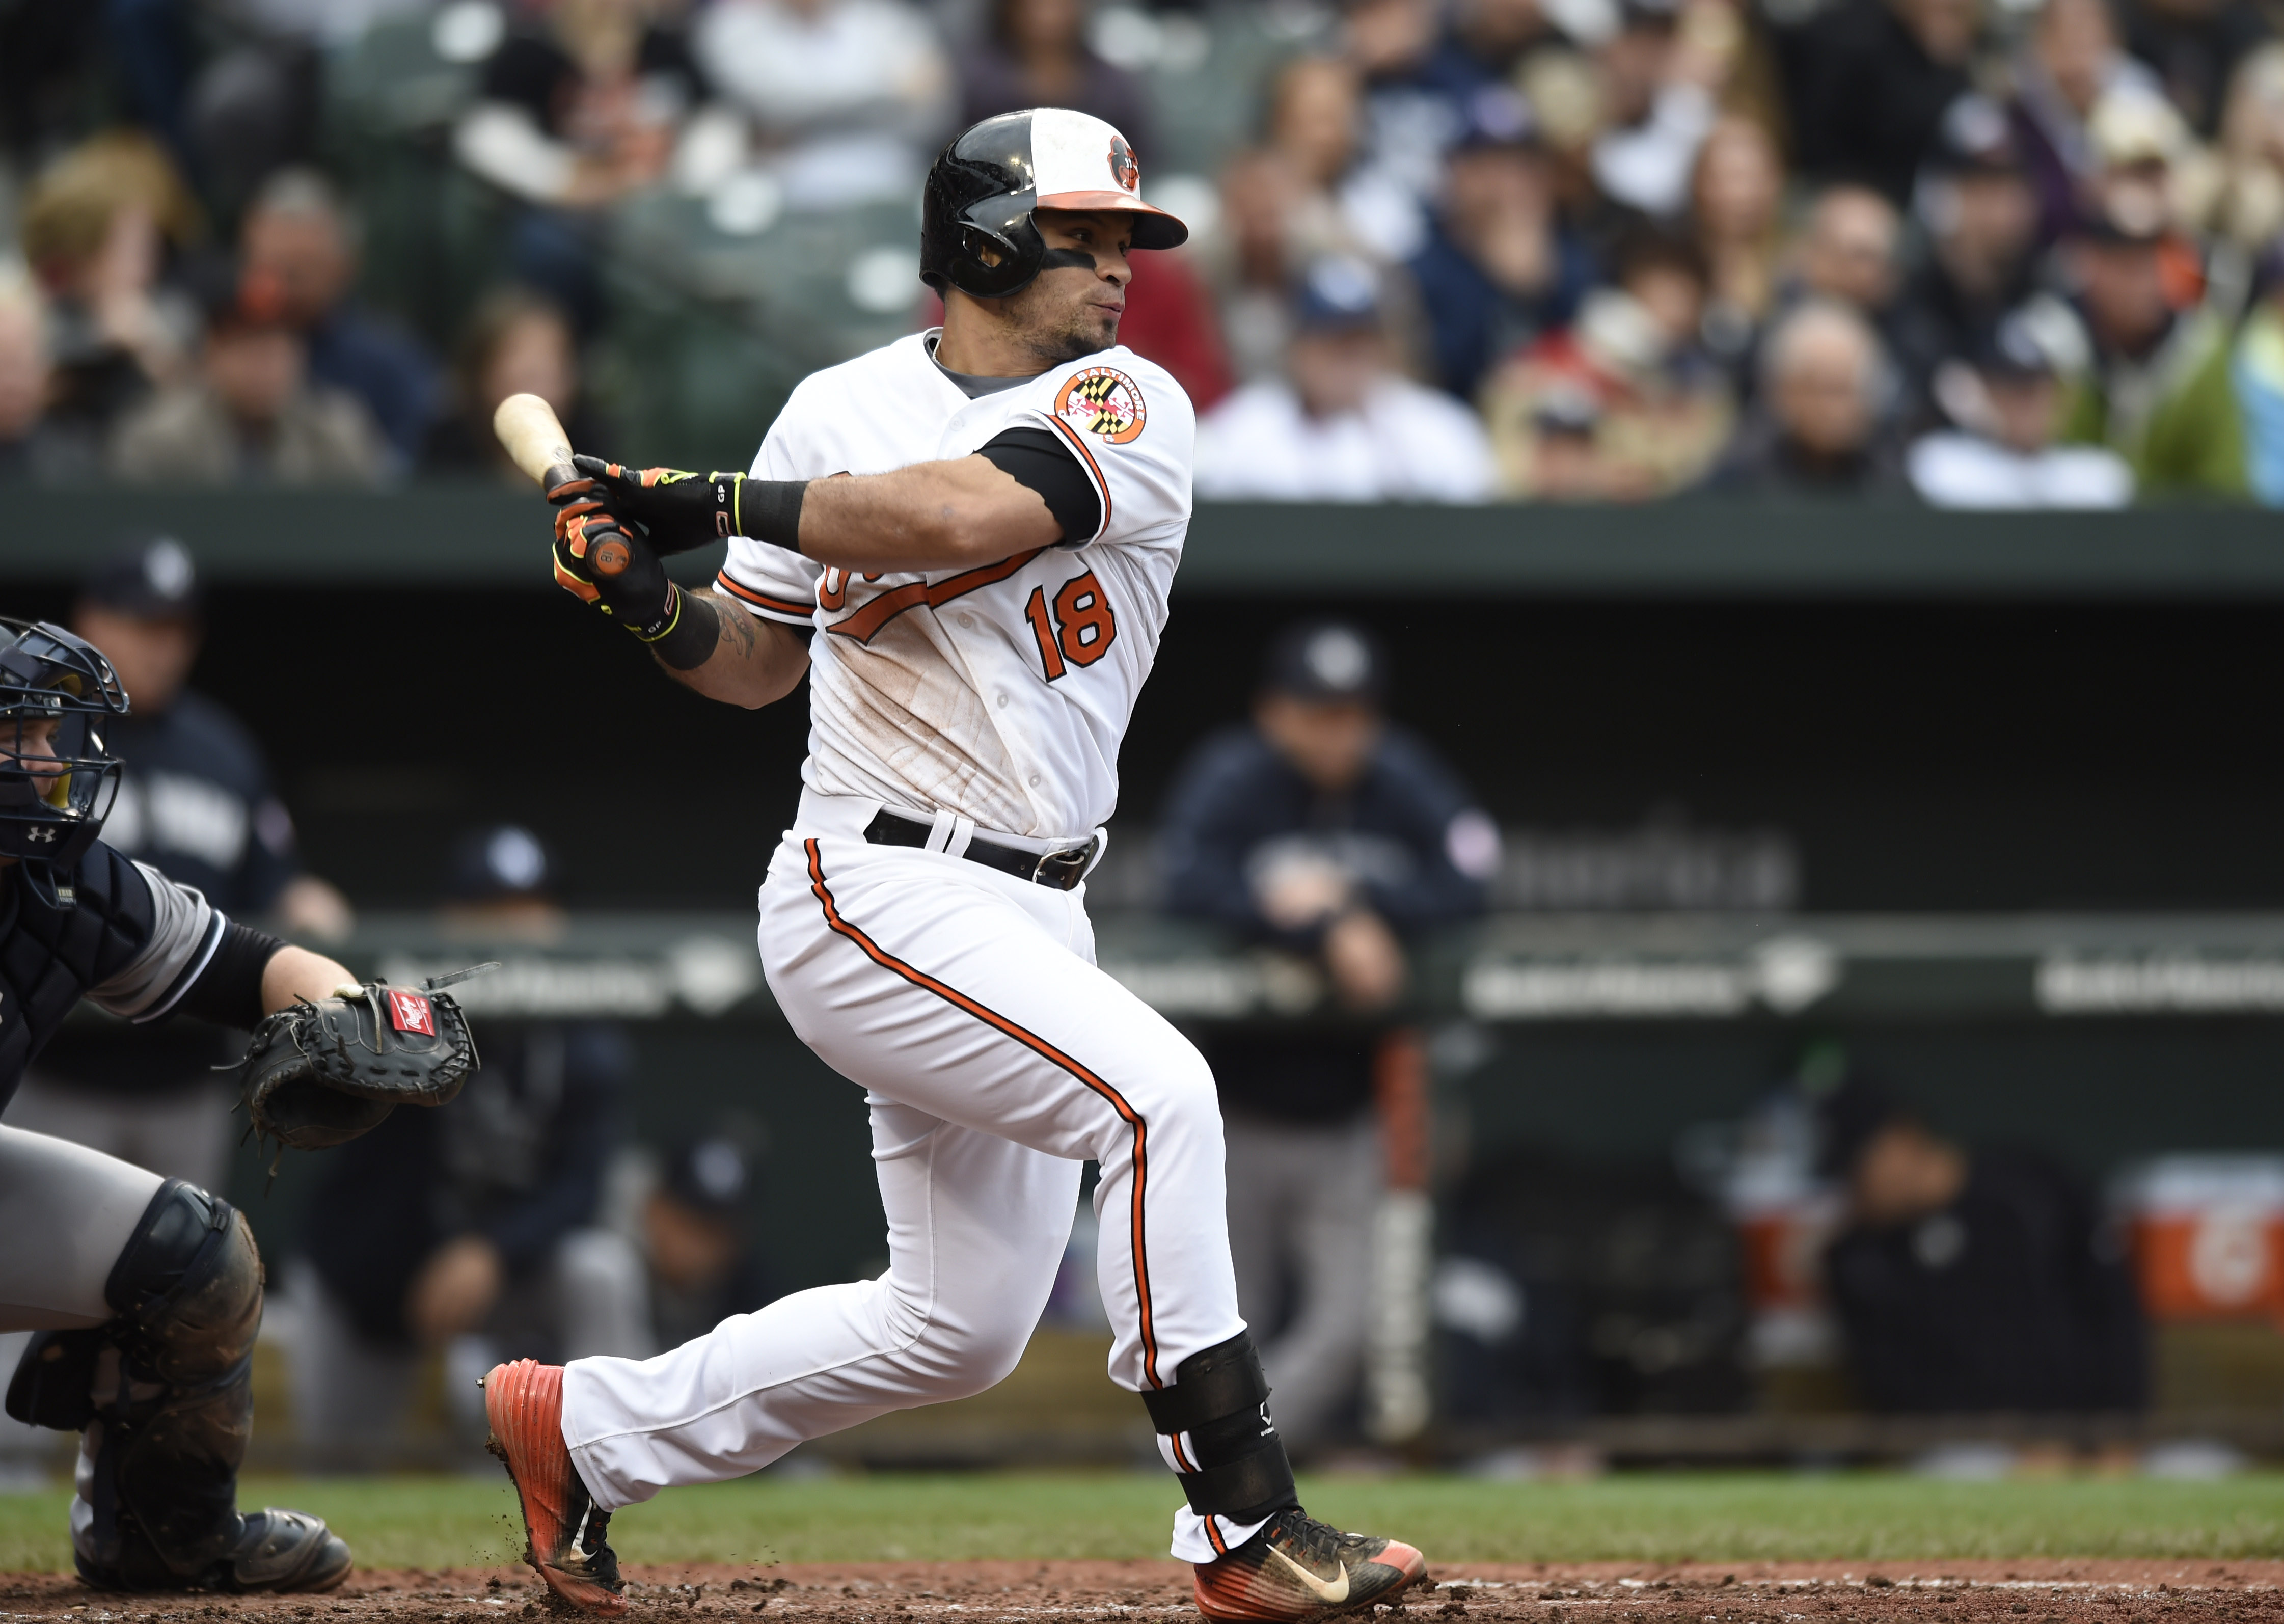 Baltimore Orioles' Gerardo Parra follows through on a two-run single against the New York Yankees in the fourth inning of a baseball game in Baltimore, Sunday, Oct. 4, 2015. (AP Photo/Gail Burton)